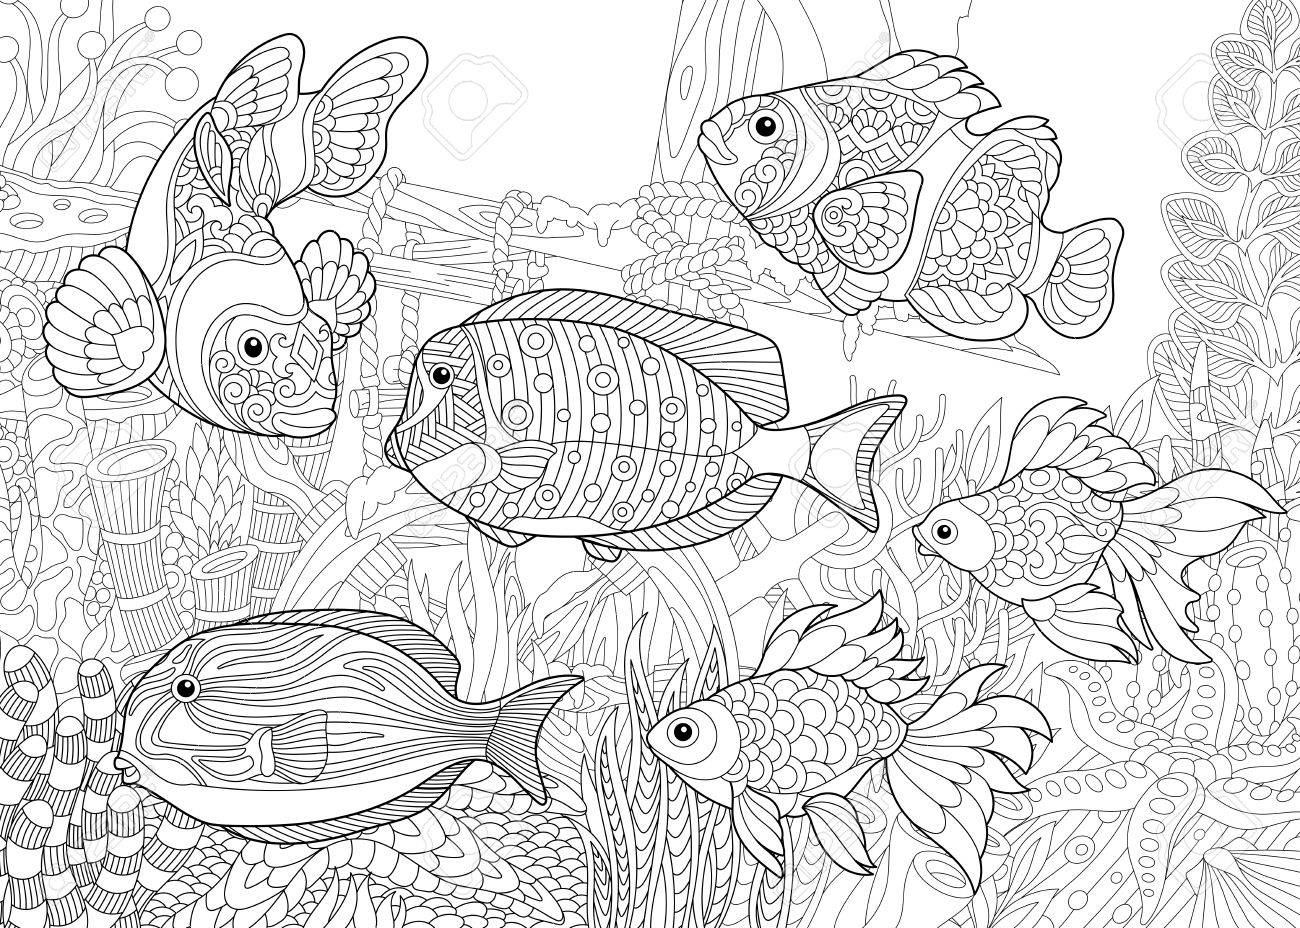 Coloring Page Of Underwater World Royalty Free Cliparts Vectors And Stock Illustration Image 85857381